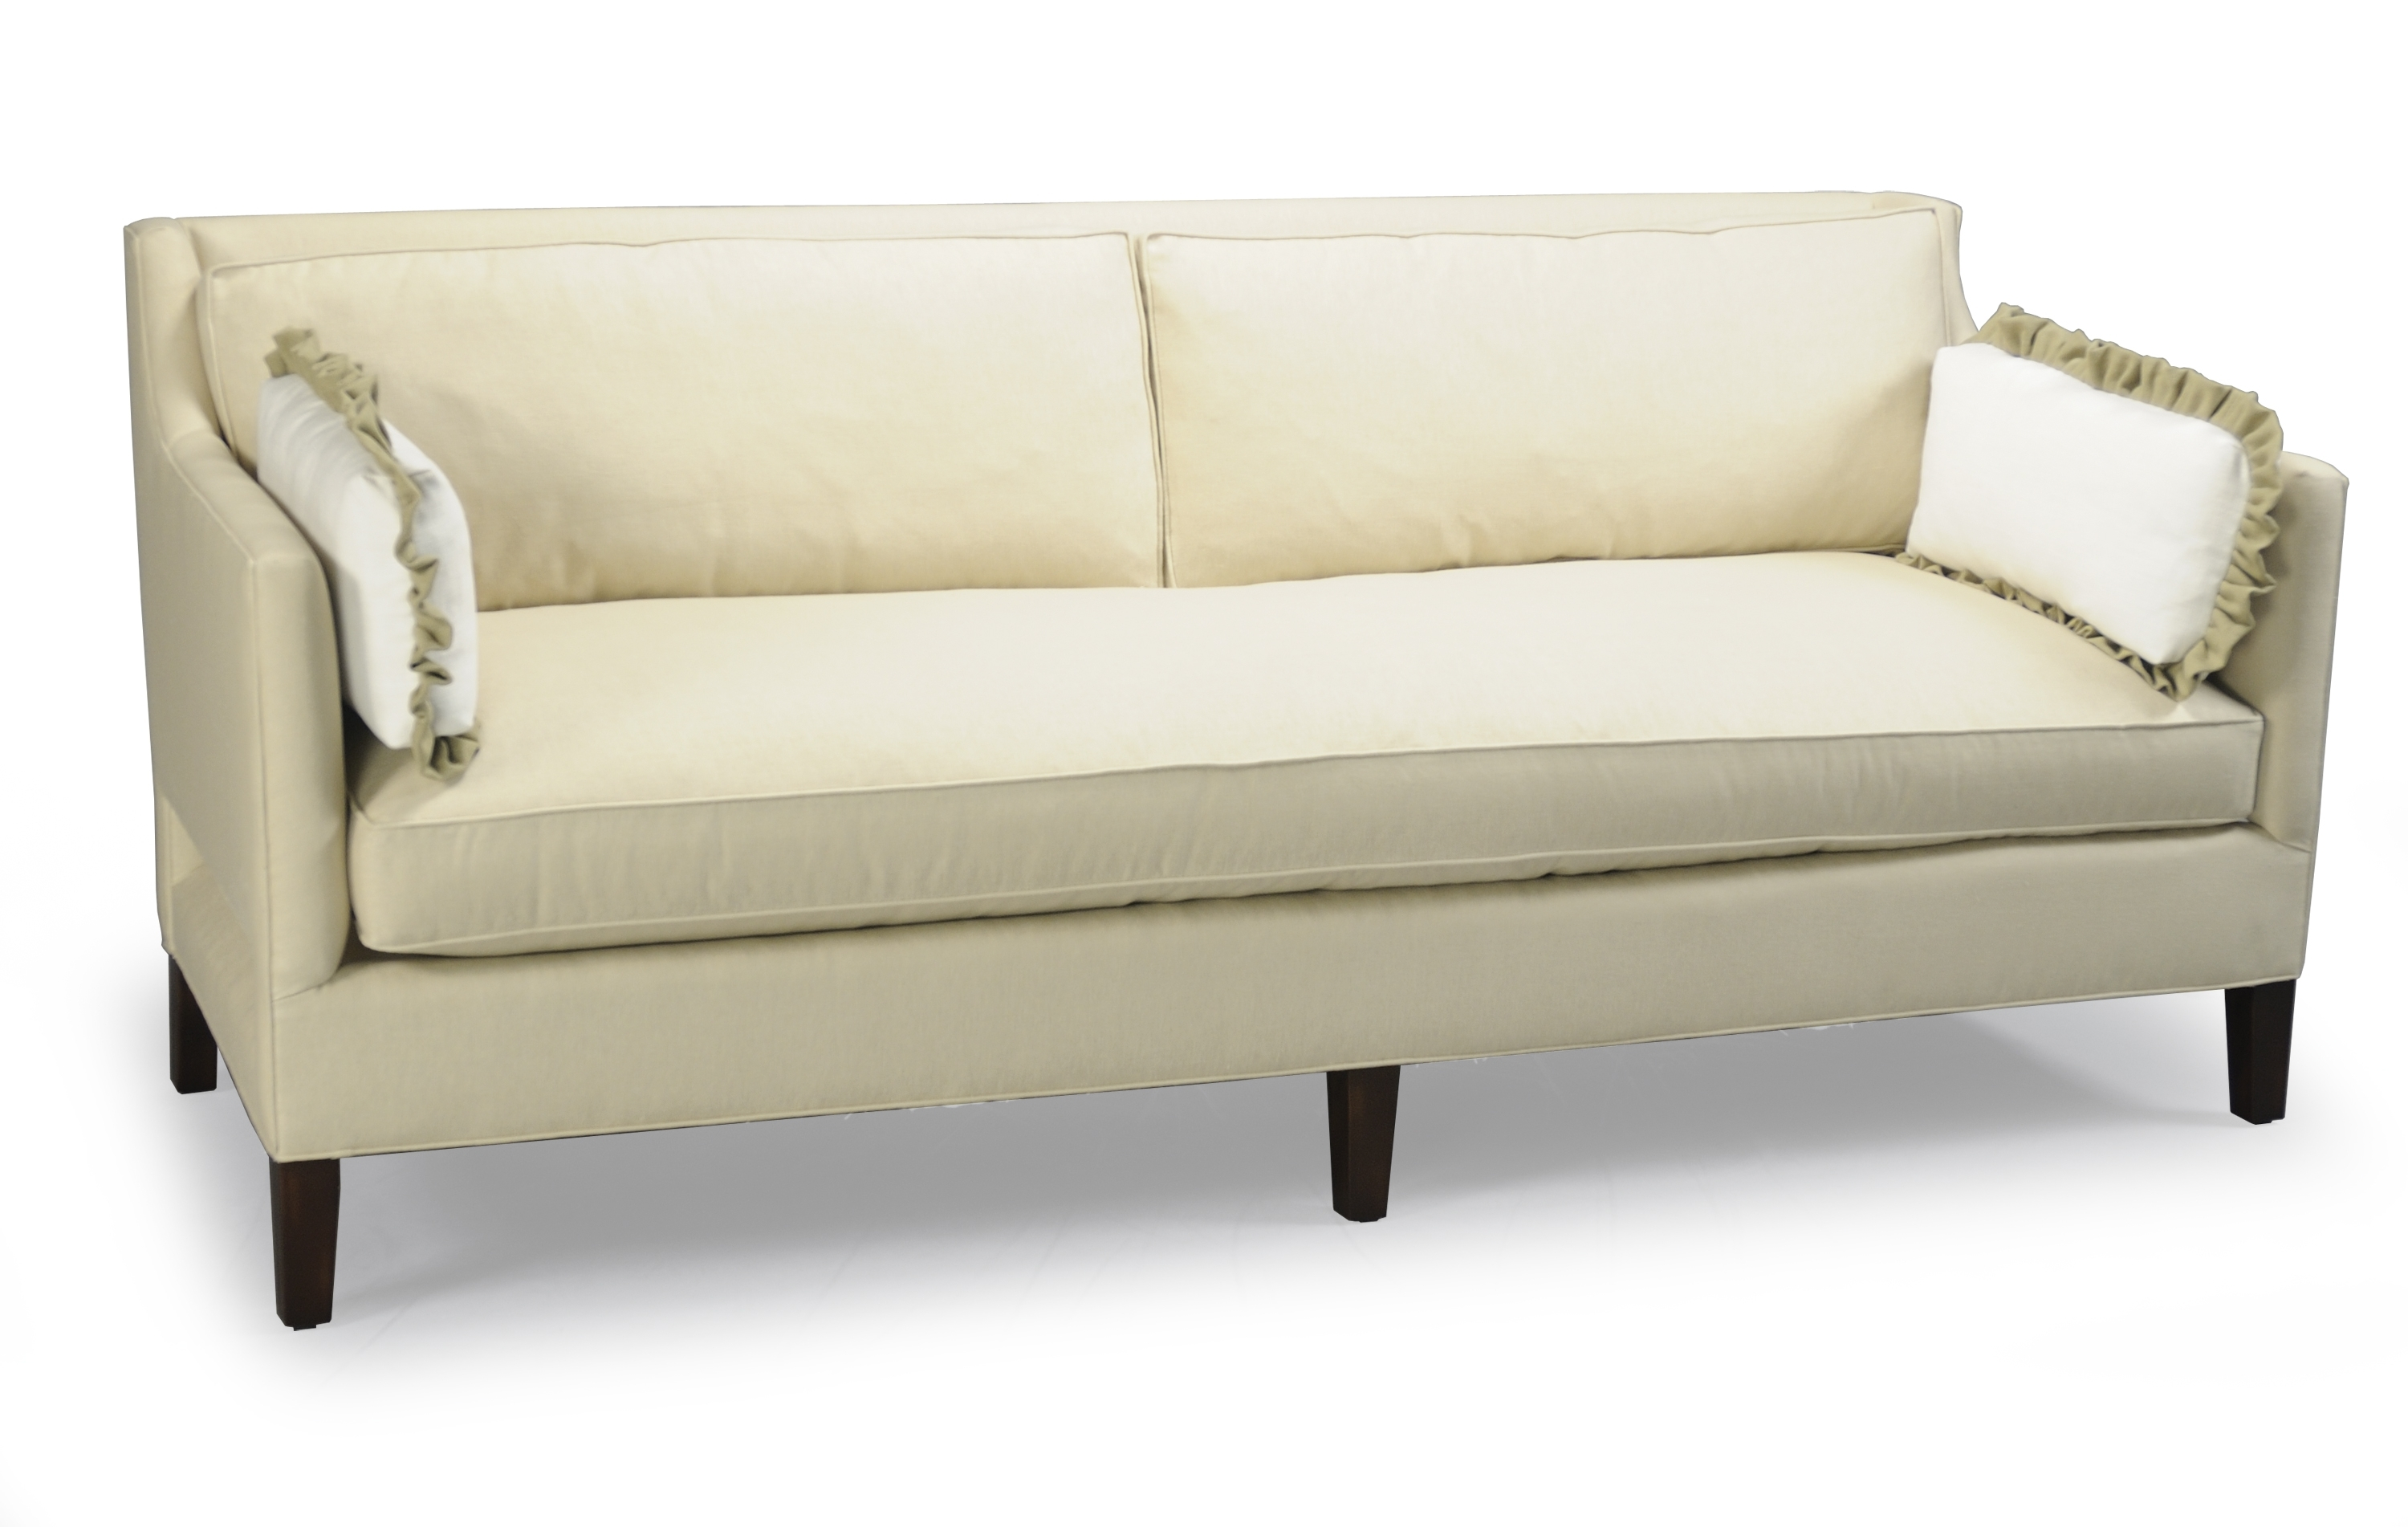 Furniture | Stanford Furniture Inside Avery 2 Piece Sectionals With Laf Armless Chaise (Image 13 of 25)